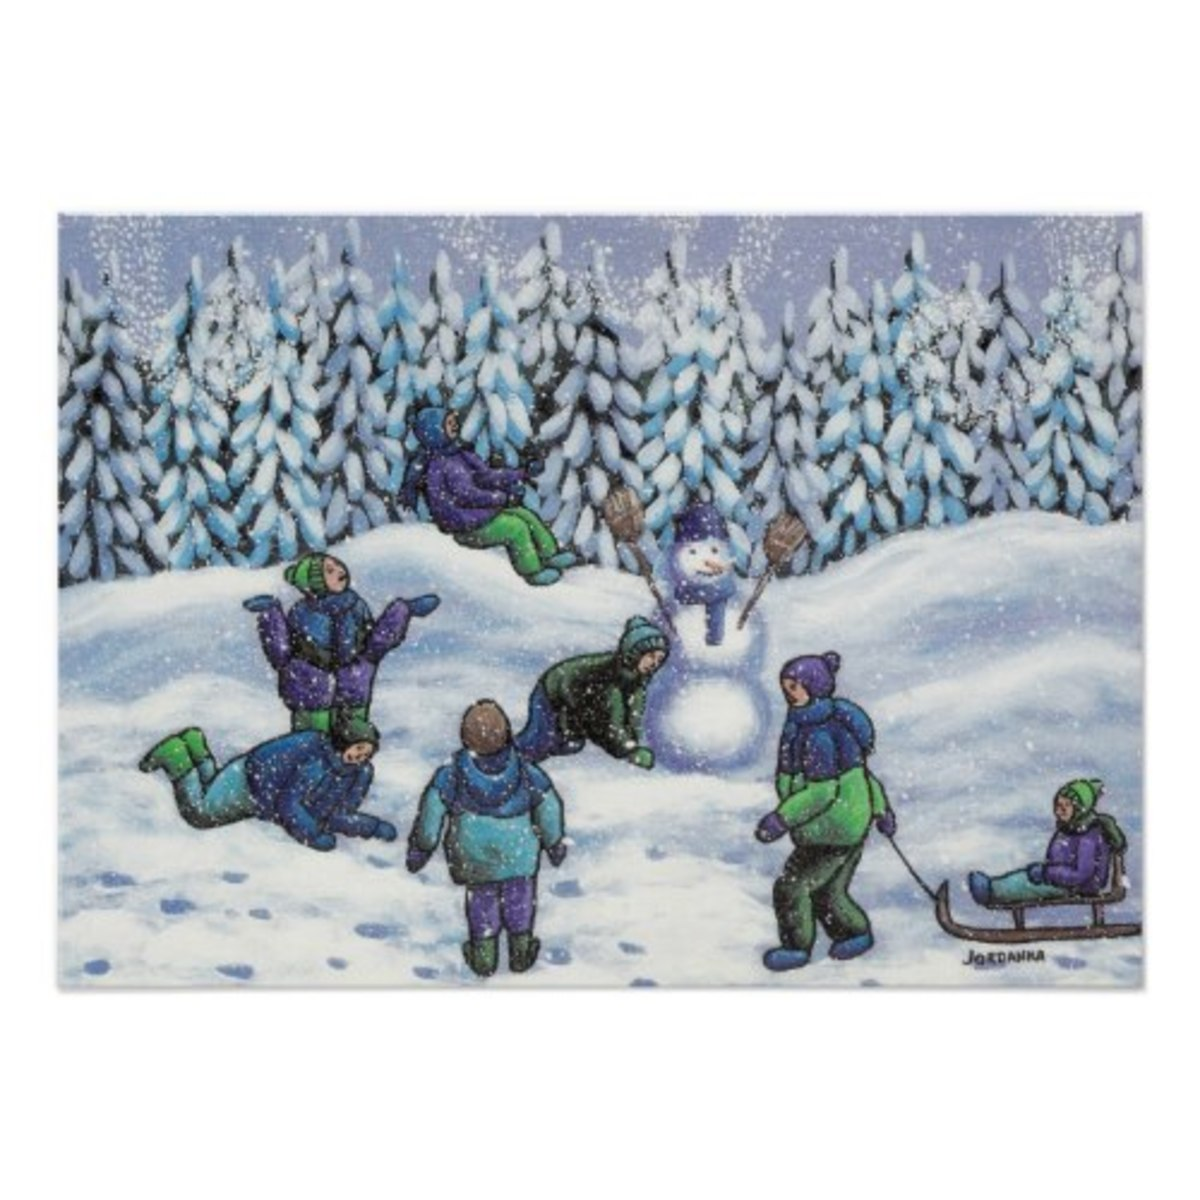 The subject of winter play interpreted by another artist. Just as Grandma Moses displayed a topic in a naive way, this artist expressed it in their own style.